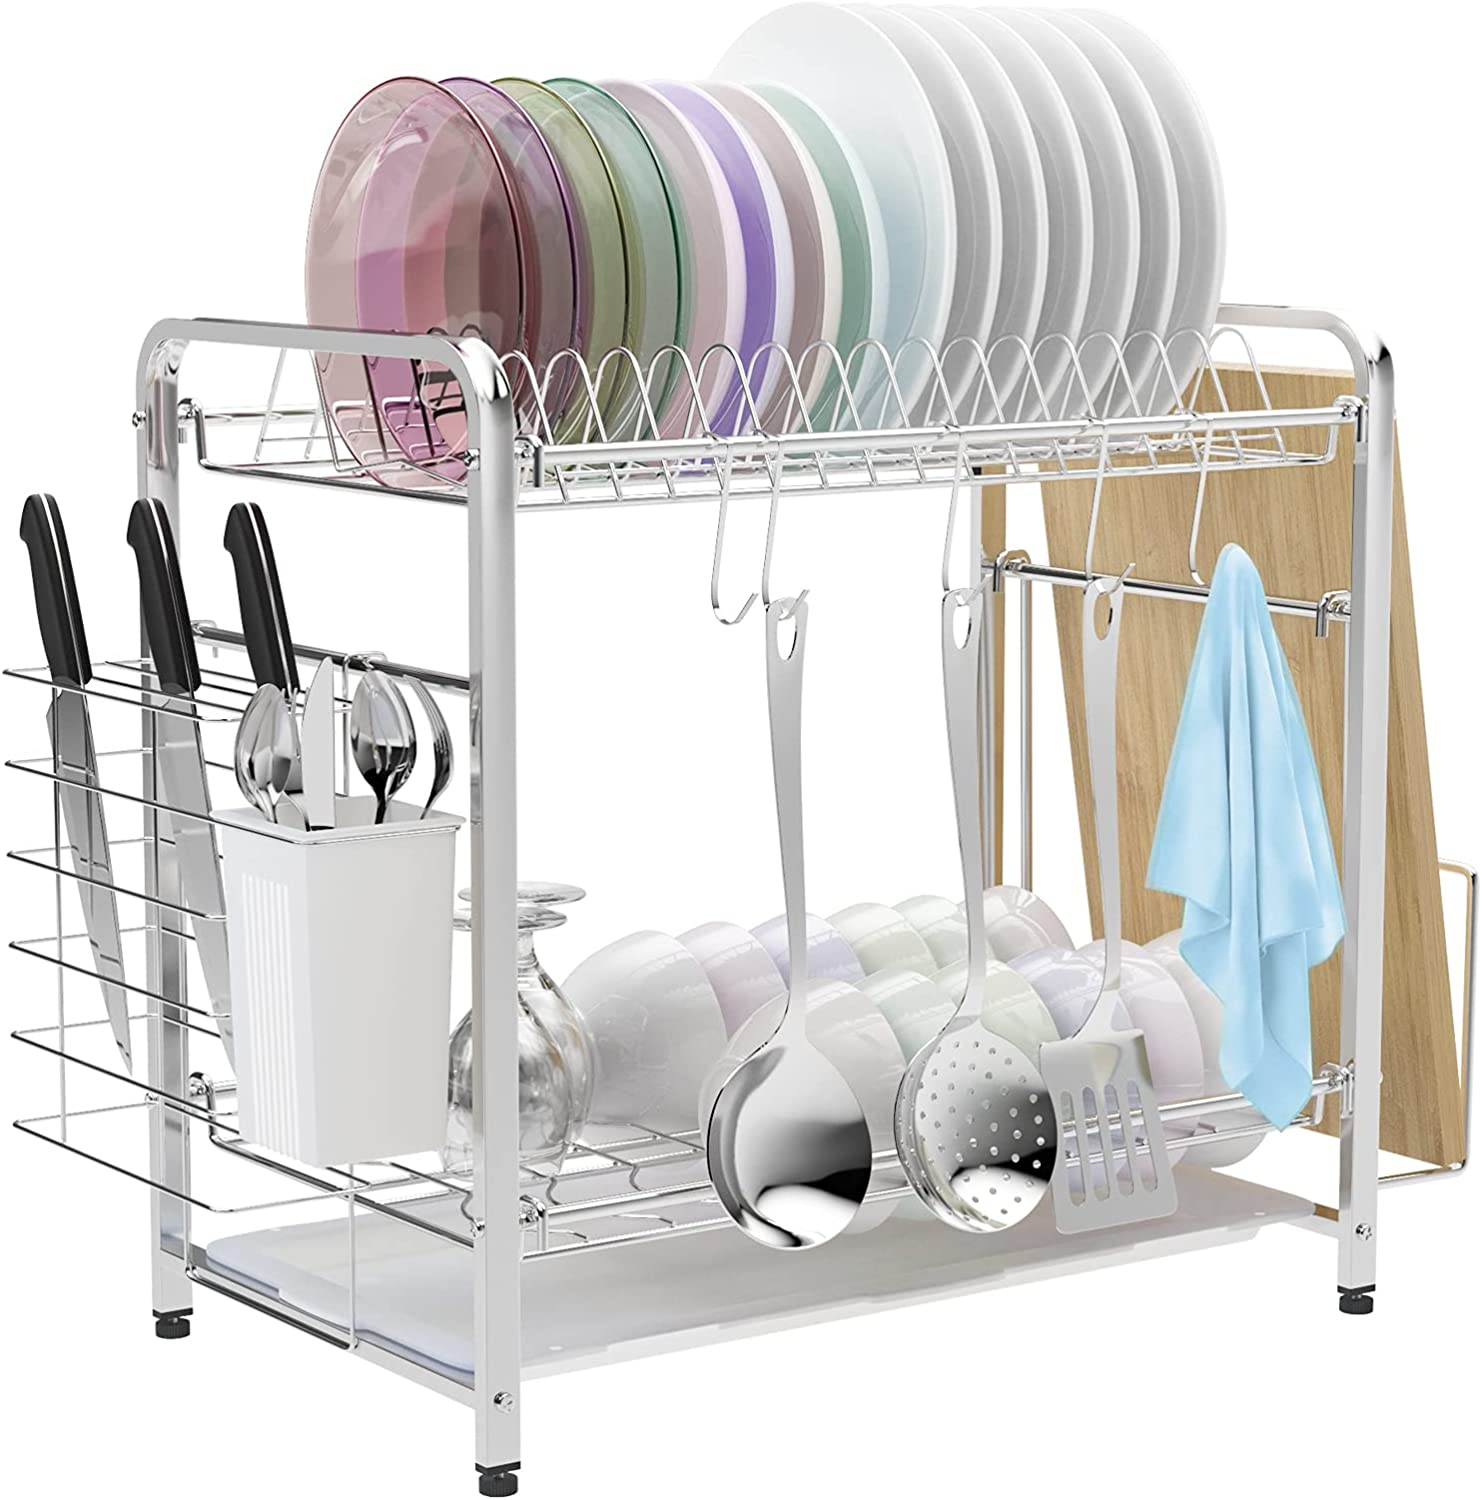 Dish Drying Rack Attention brand VLikeze Max 66% OFF Stainless Dishes Dryer 2-Tier Steel Sh